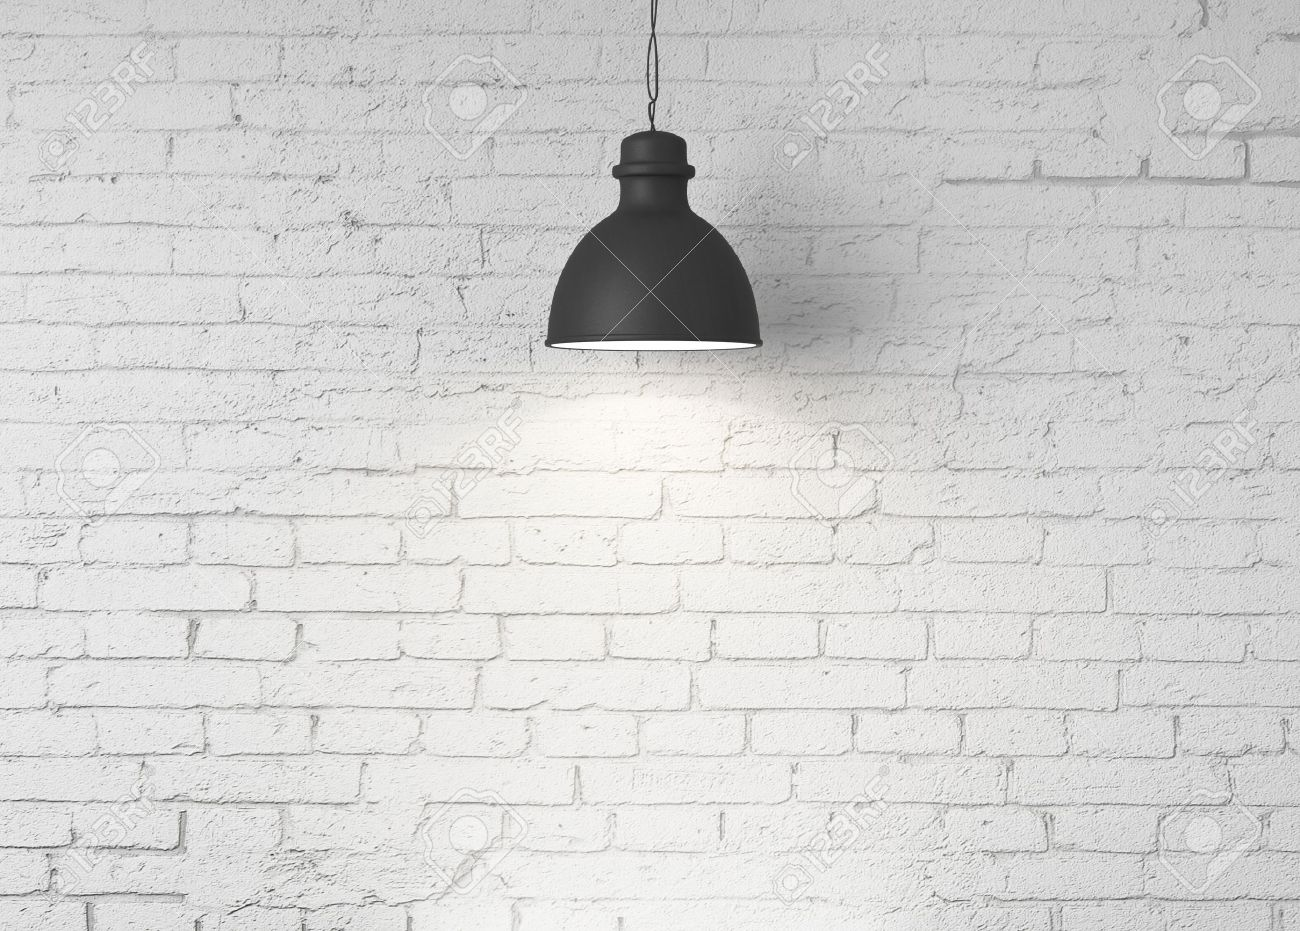 Brick Wall And Ceiling Lamps Stock Photo Picture And Royalty Free Image Image 18243814